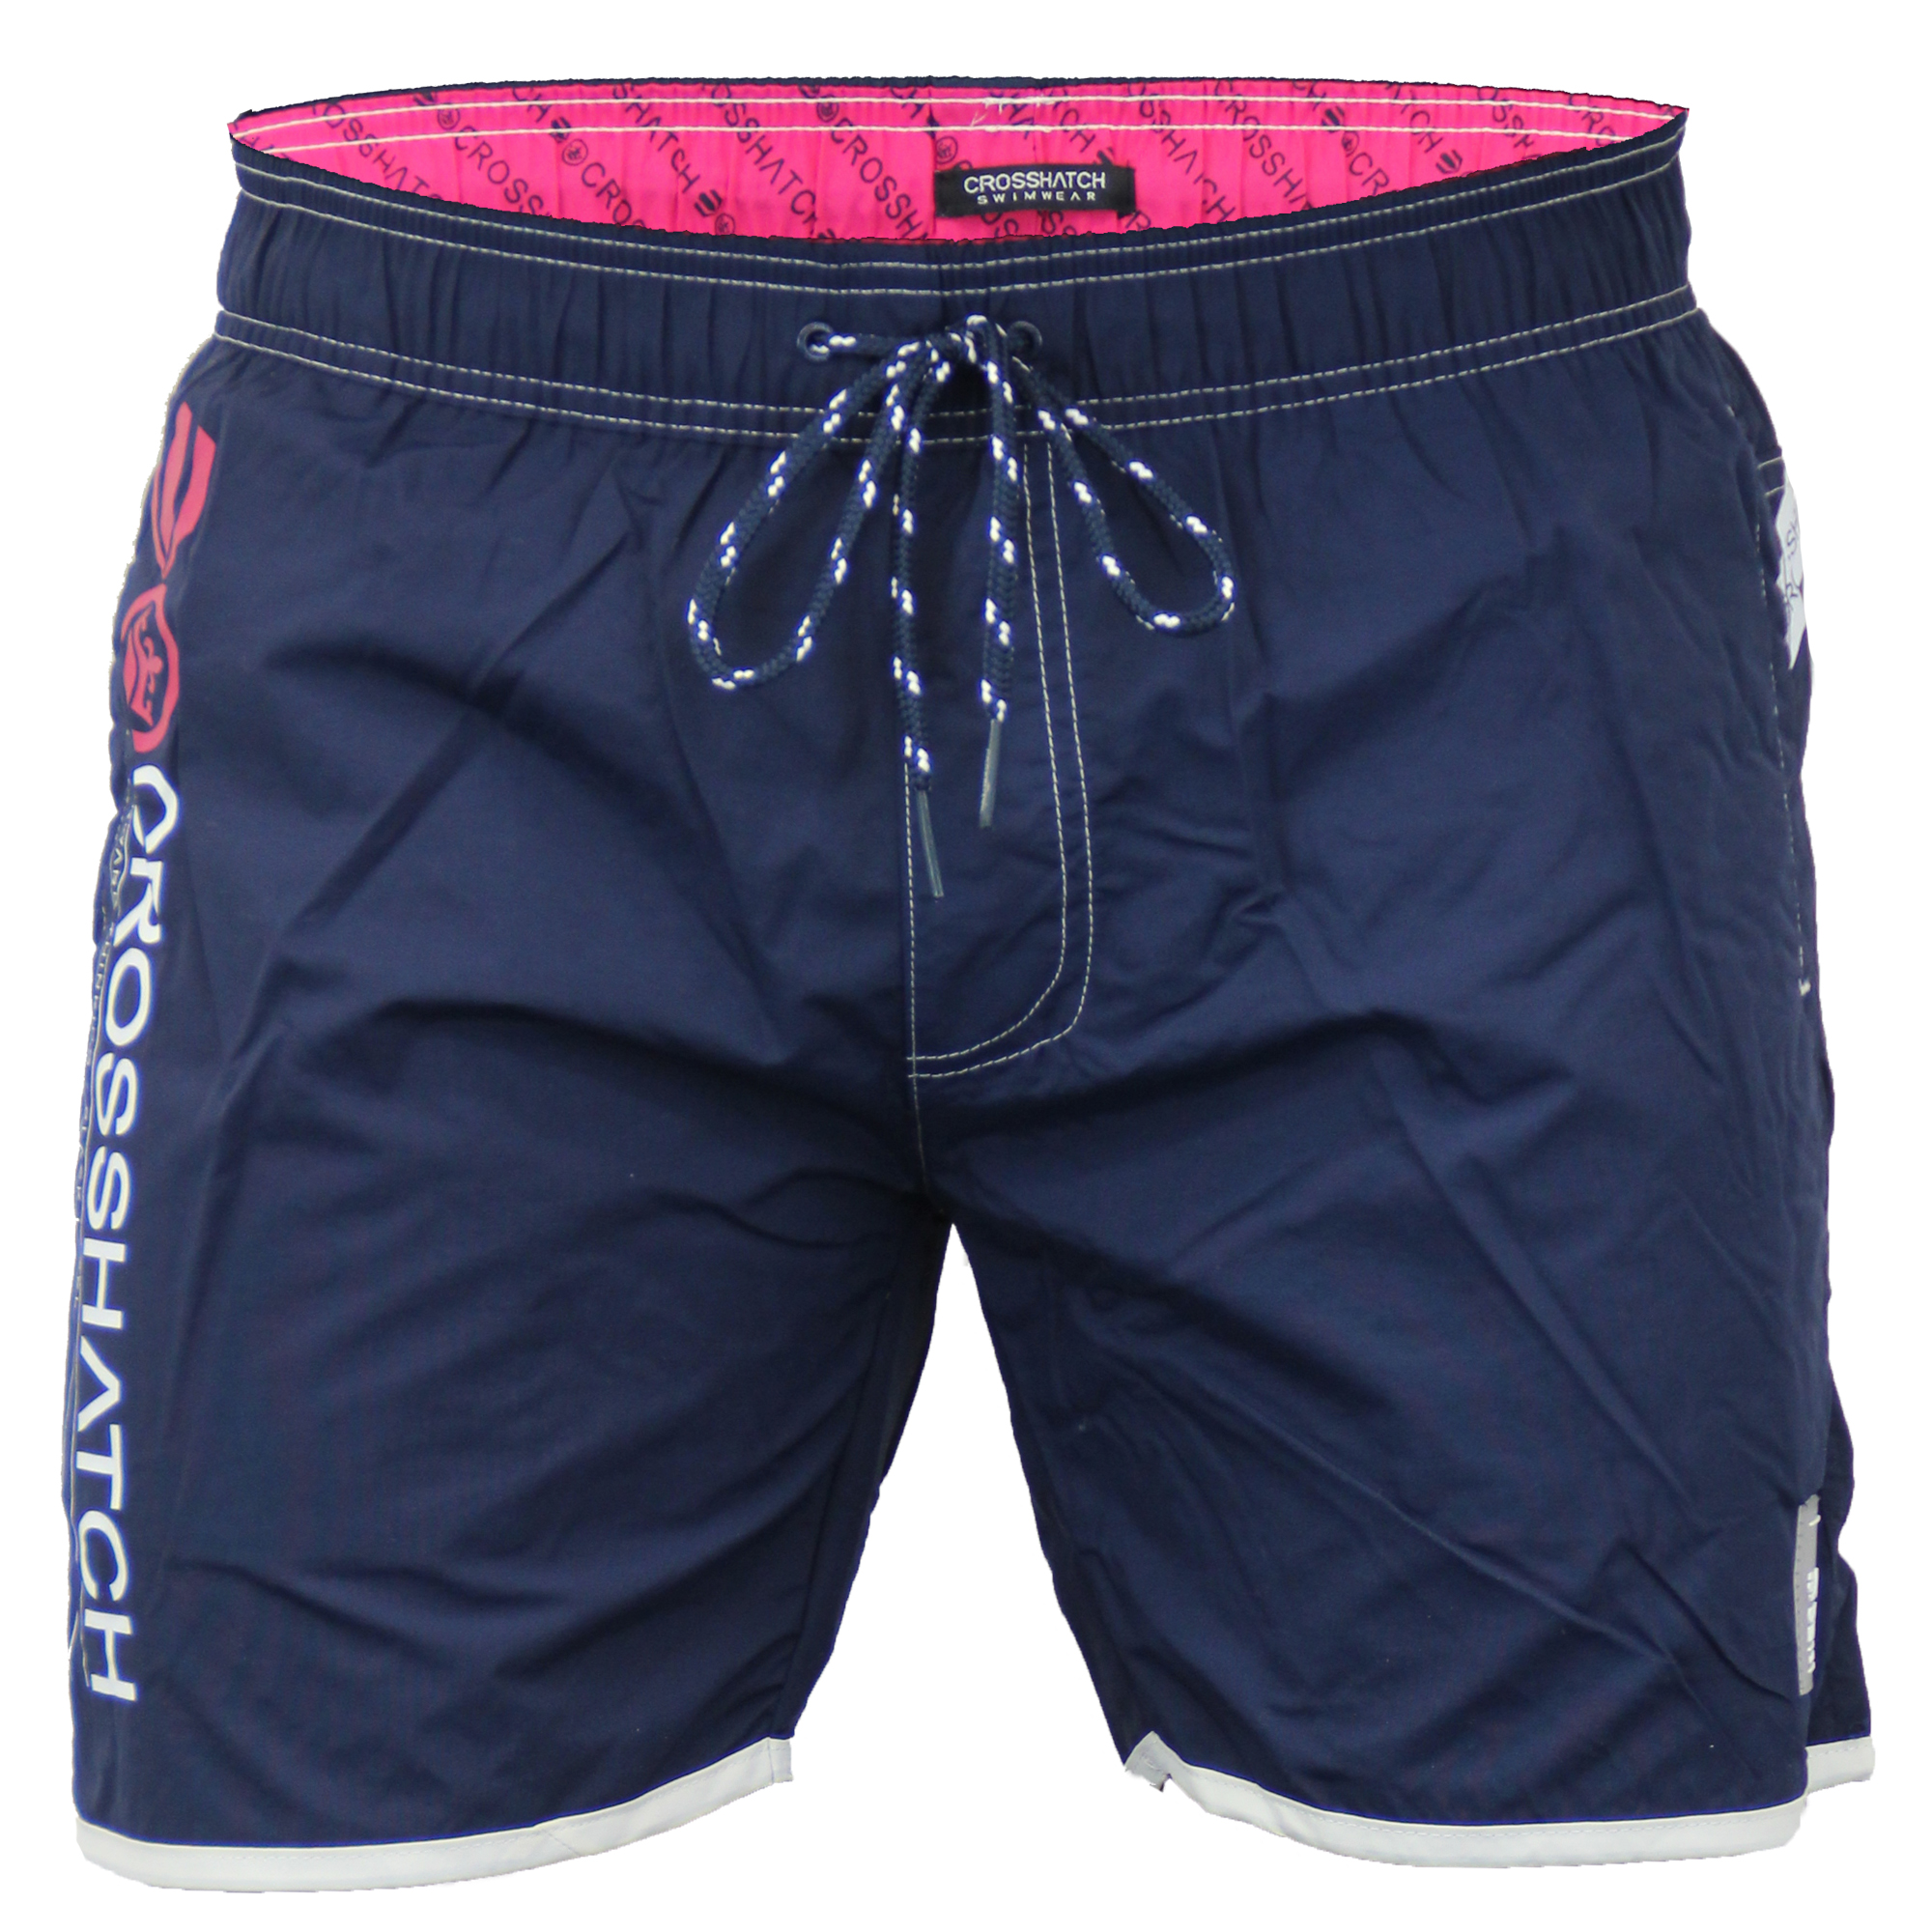 Find great deals on eBay for board shorts lined. Shop with confidence.